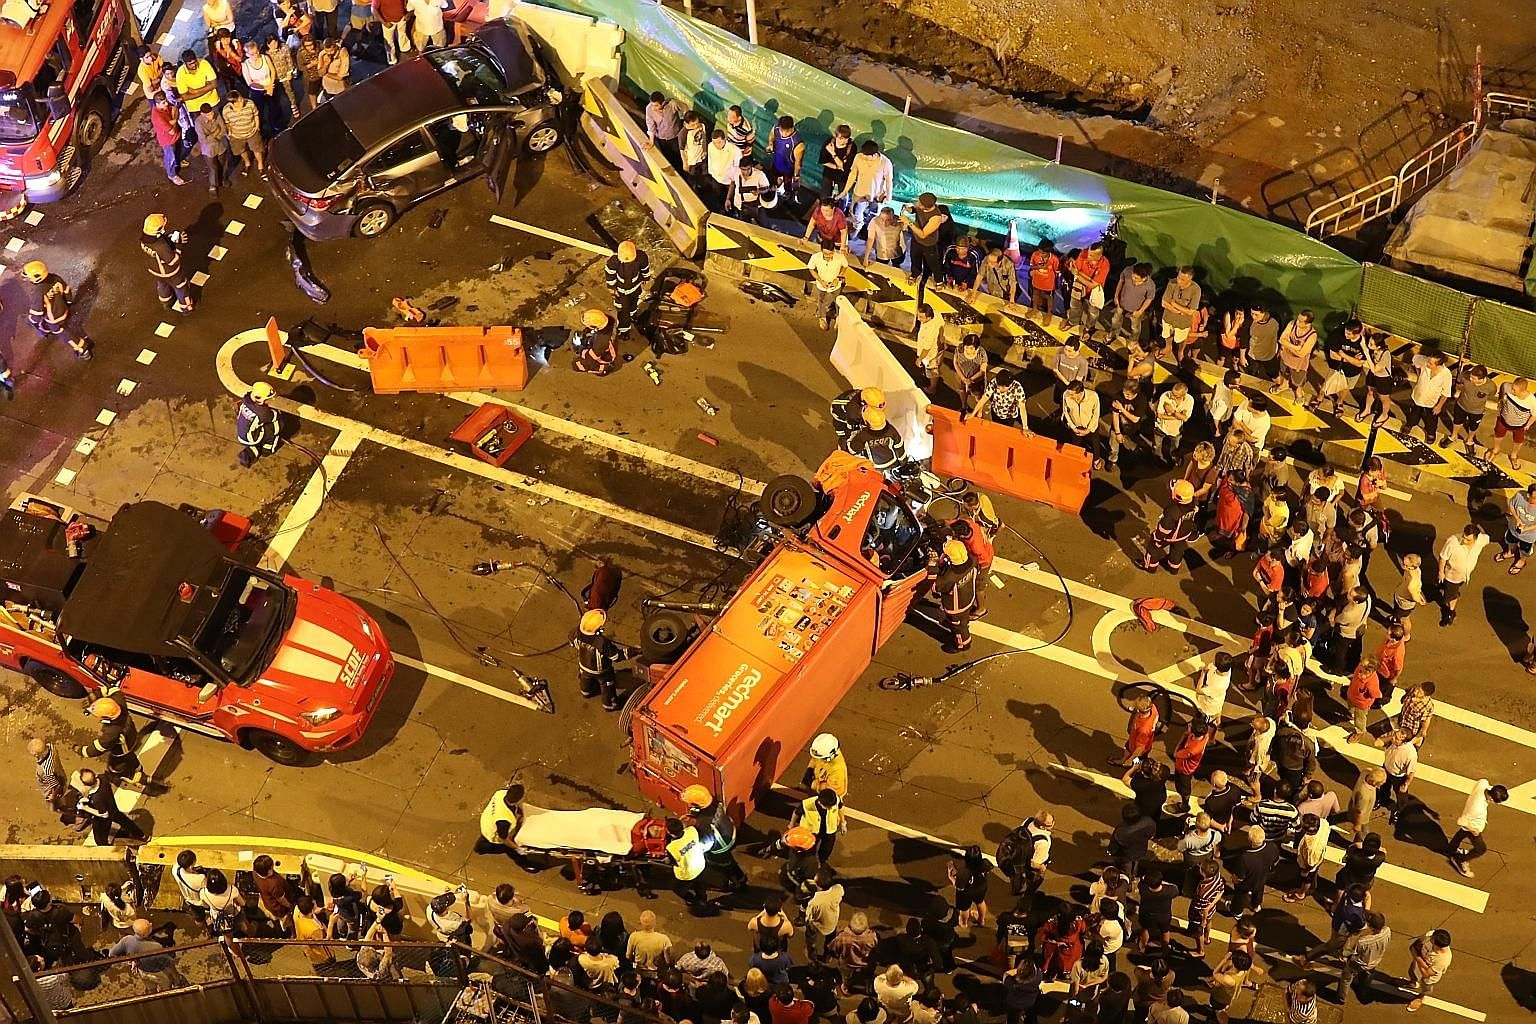 The crash between the Redmart lorry and car occurred at the junction of Ang Mo Kio Avenue 4 and Ang Mo Kio Street 11 at about 10pm. SCDF officers extricated the driver trapped in the lorry using hydraulic tools and took him to Tan Tock Seng Hospital.